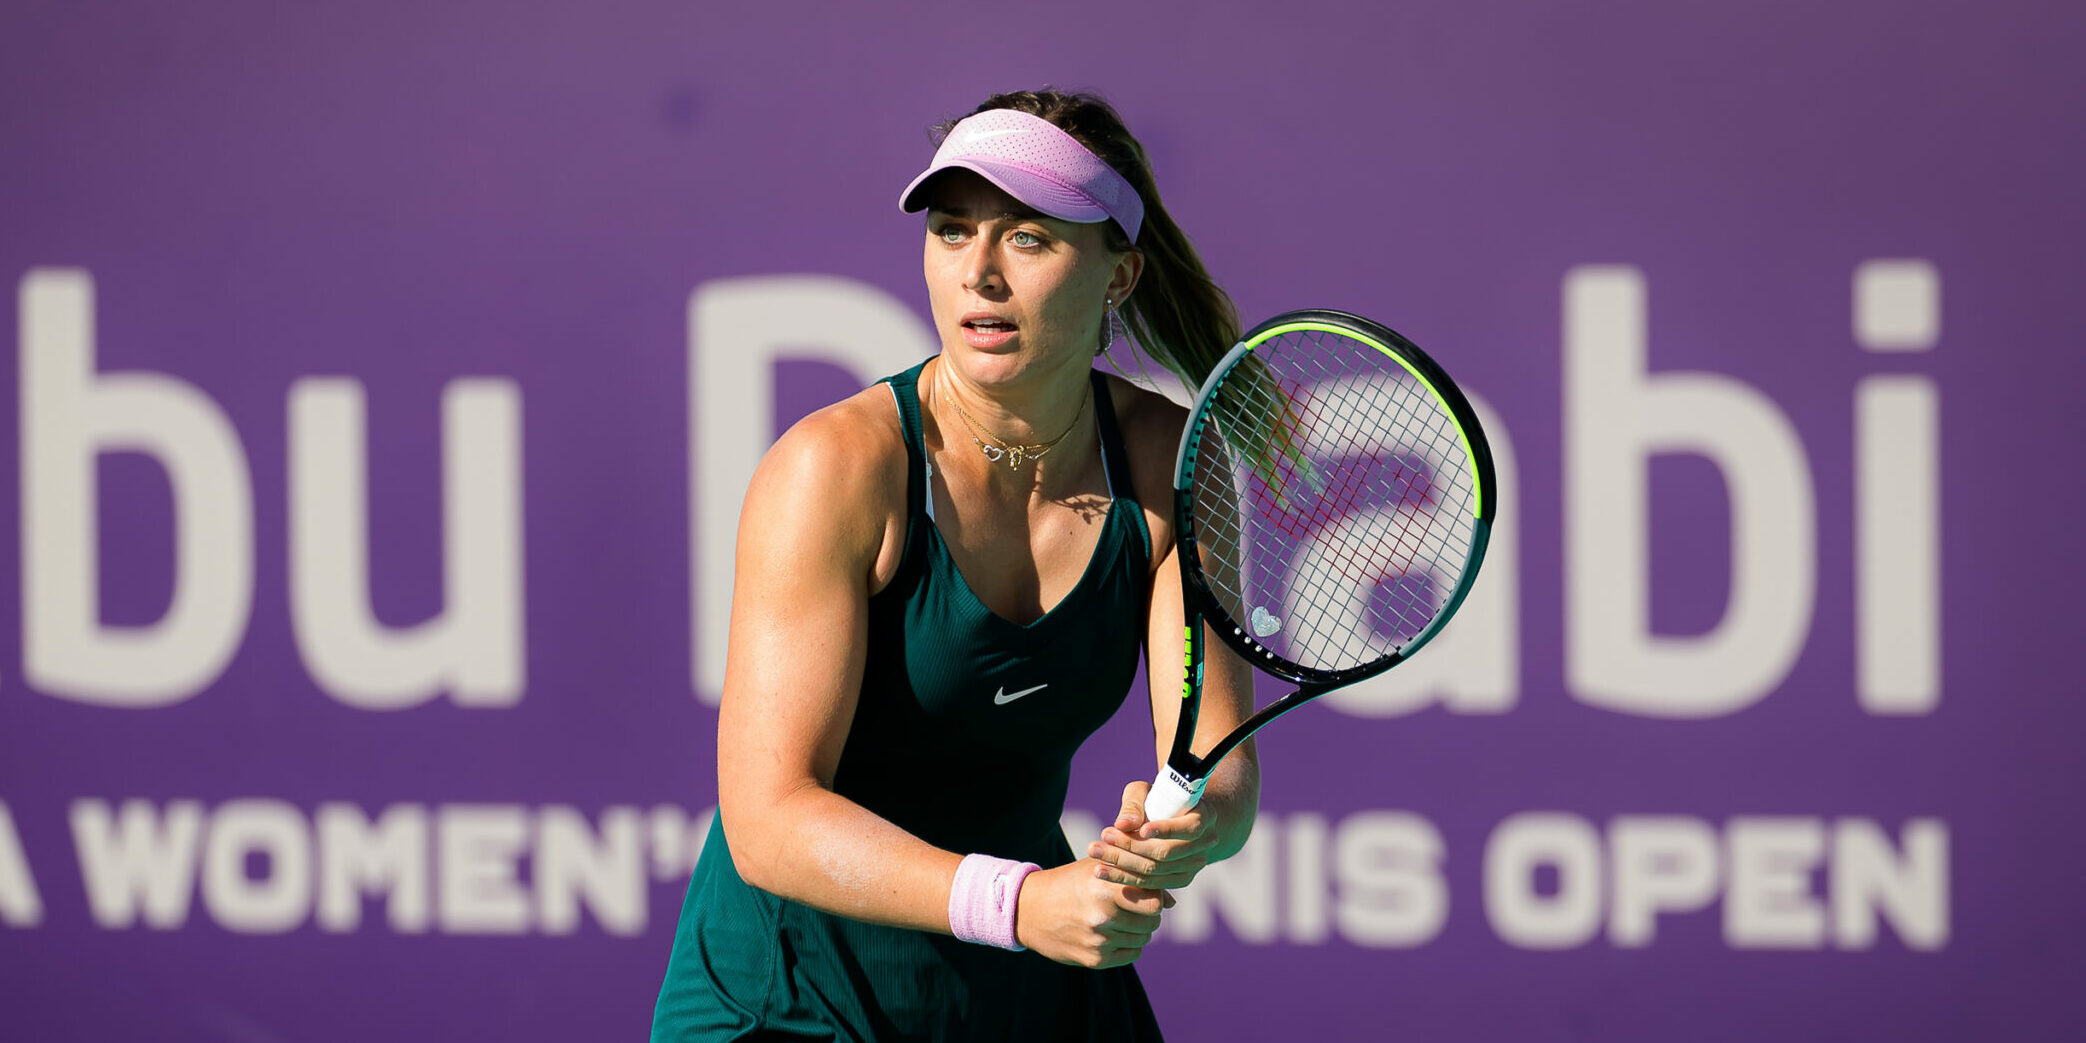 Paula Badosa of Spain in action during her third round match at the 2021 Abu Dhabi WTA Womens Tennis Open WTA 500 tournament against Veronika Kudermetova of Russia AFP7  / Europa Press 10/1/2021 ONLY FOR USE IN SPAIN